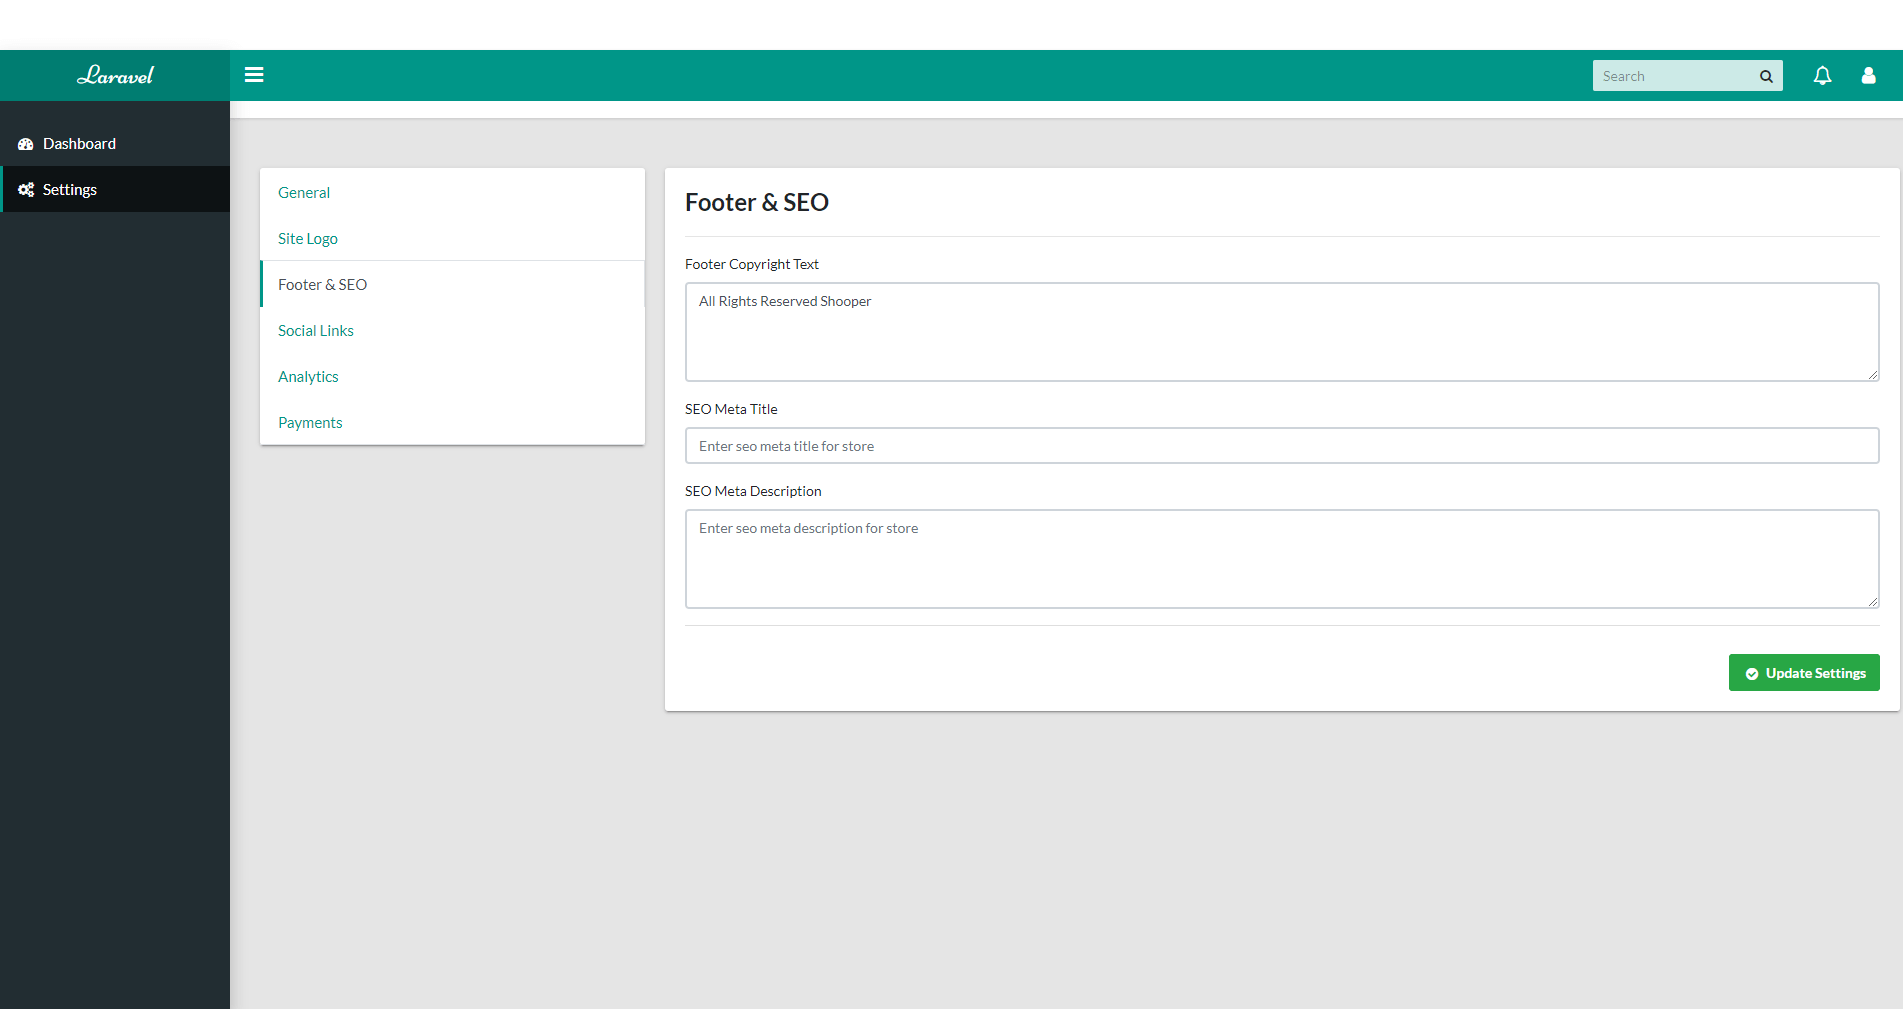 Settings Section - Footer